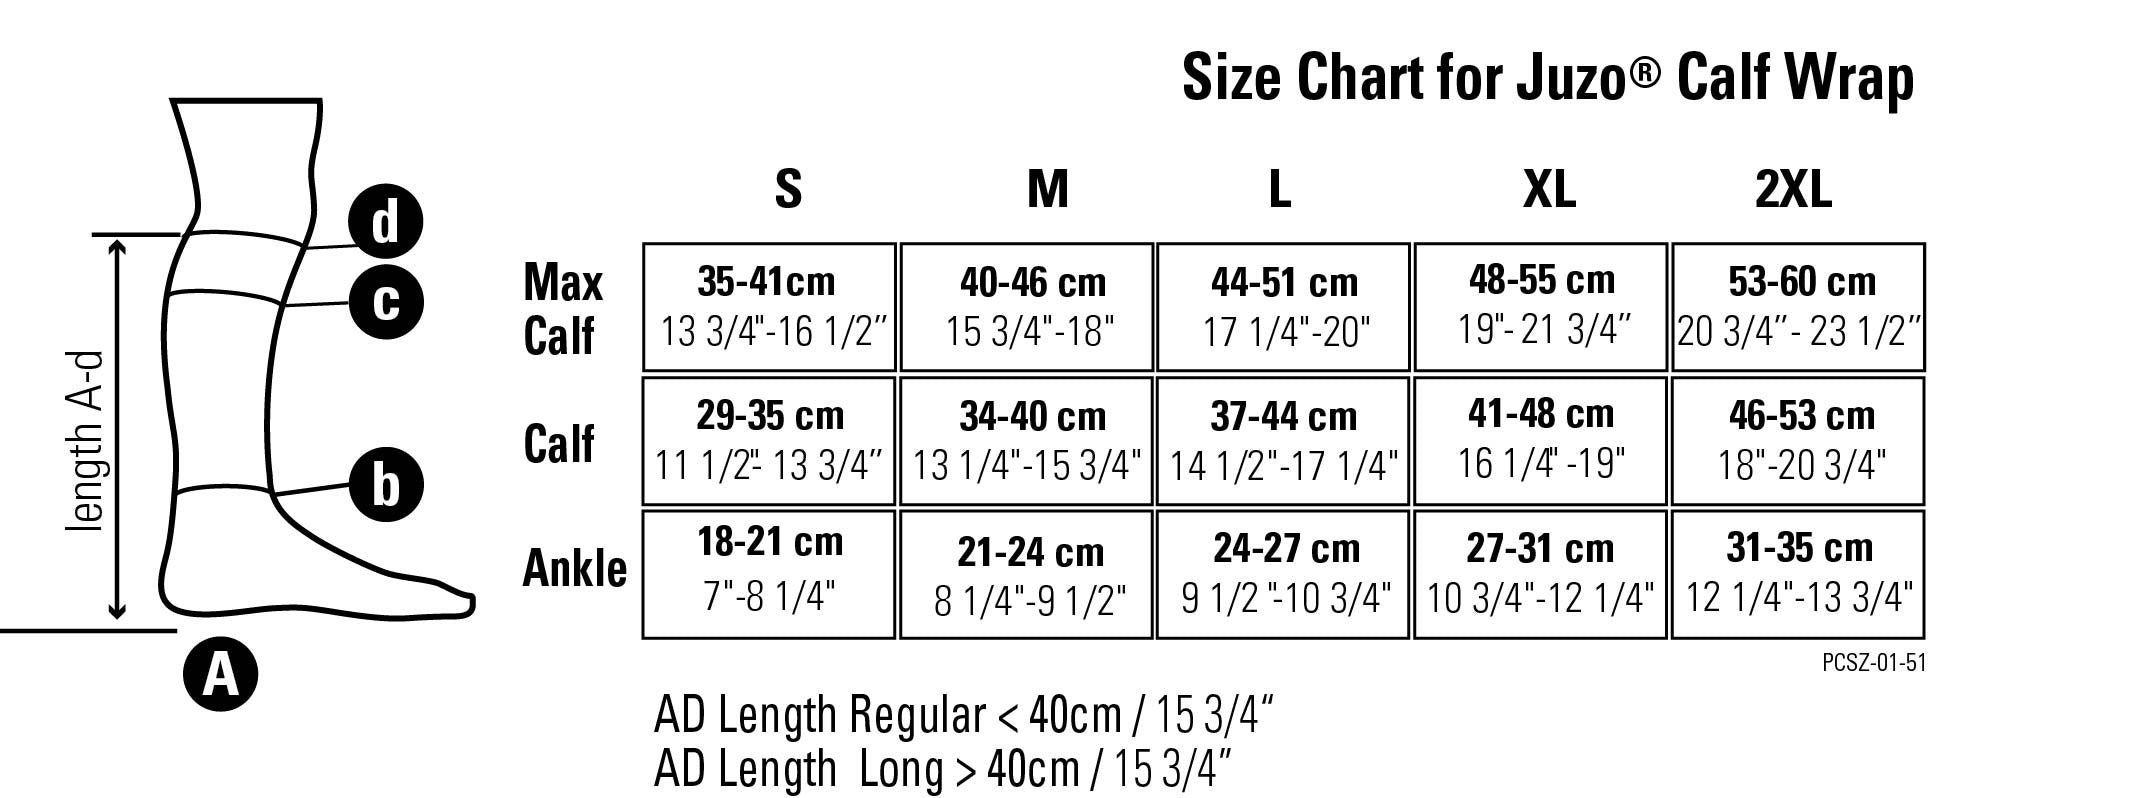 Juzo Compression Wrap Size Chart